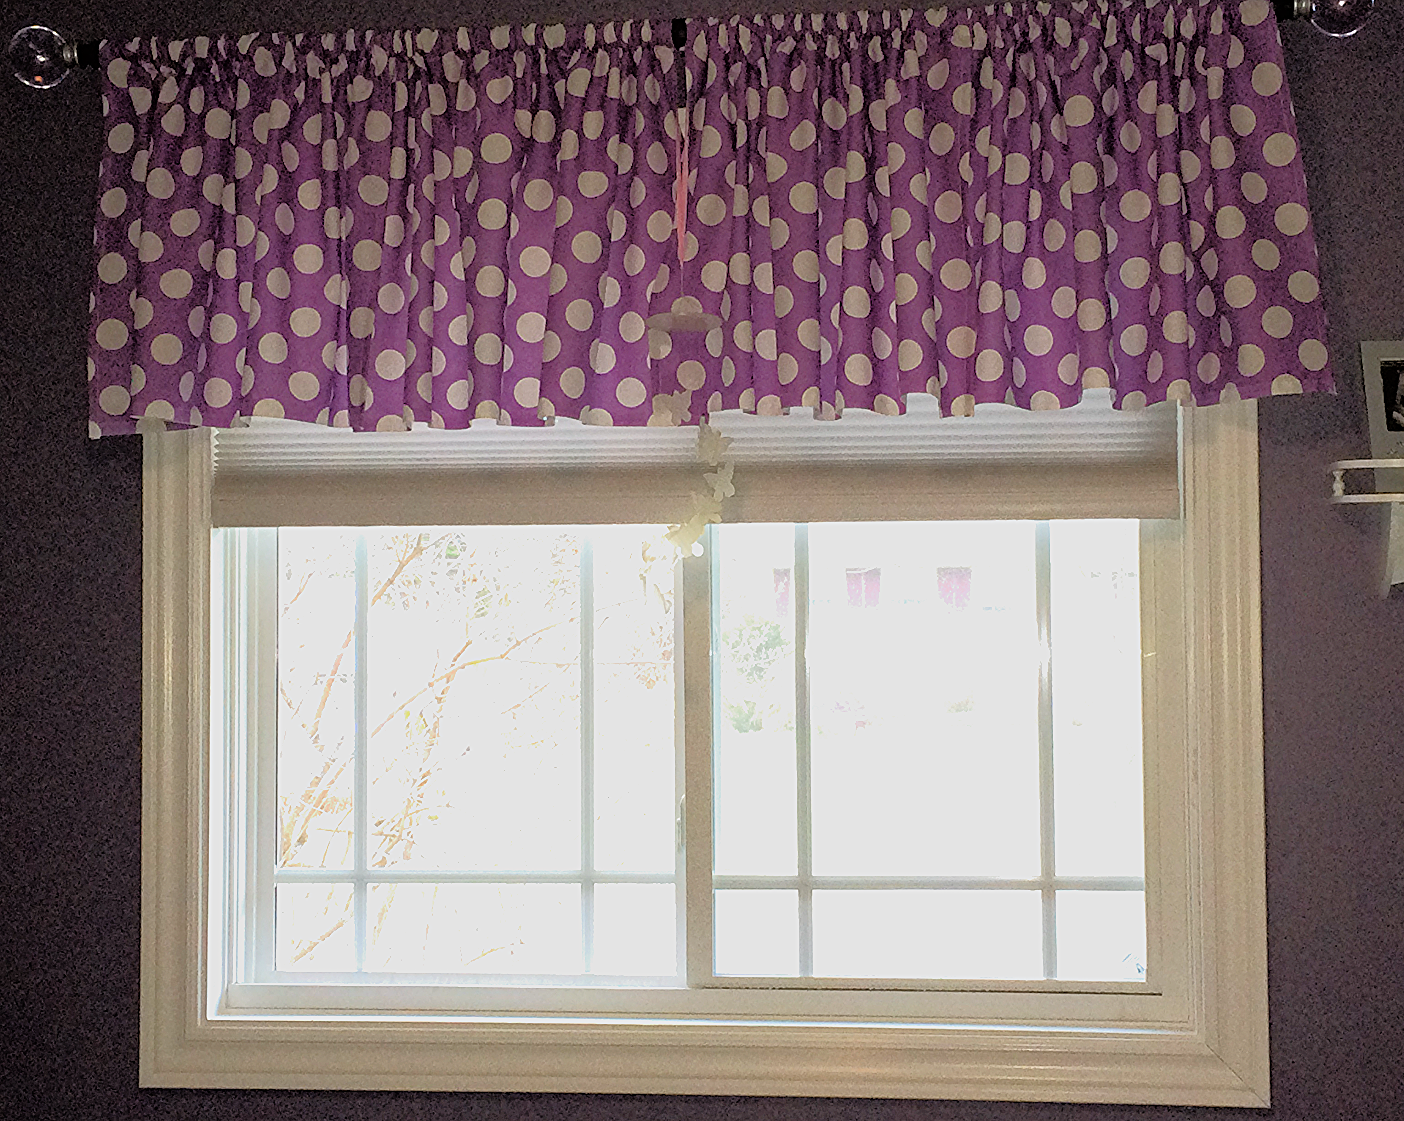 Polkadot valance Inspired by mom xoxo